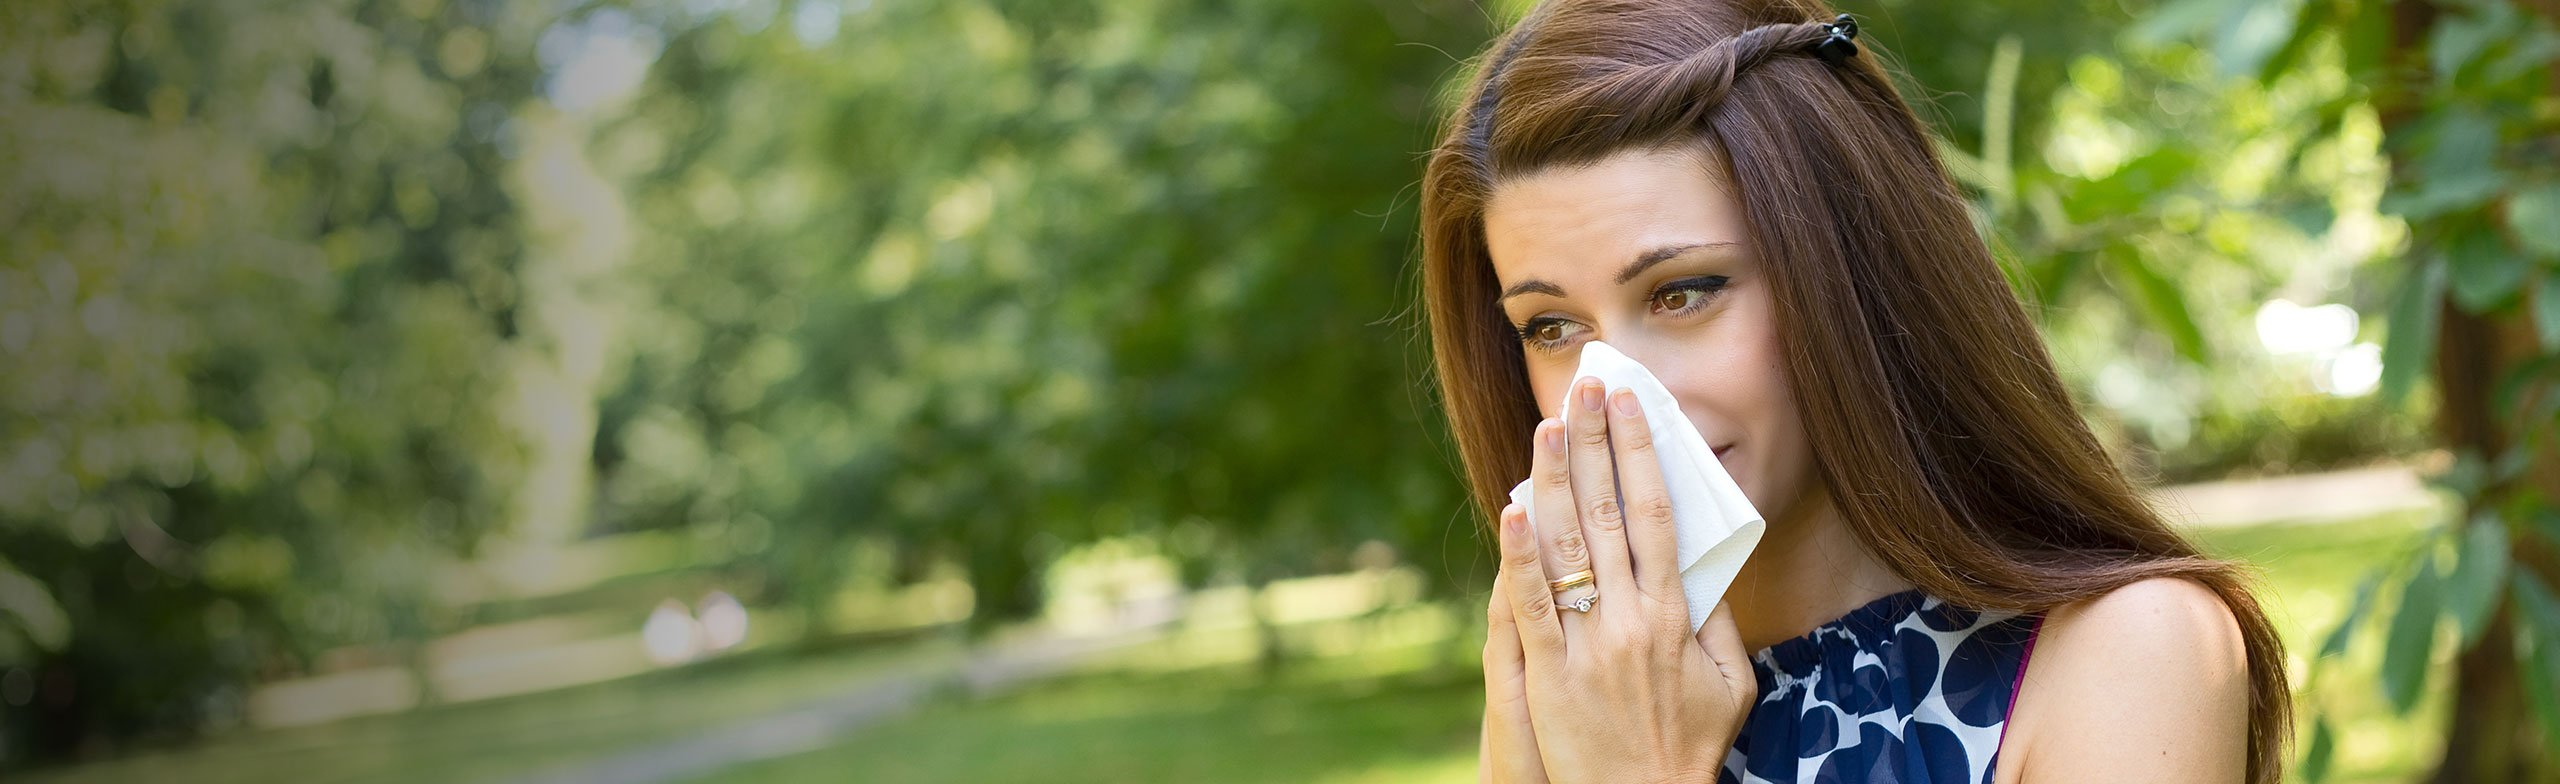 Don't Let Allergies Ruin Your Spring